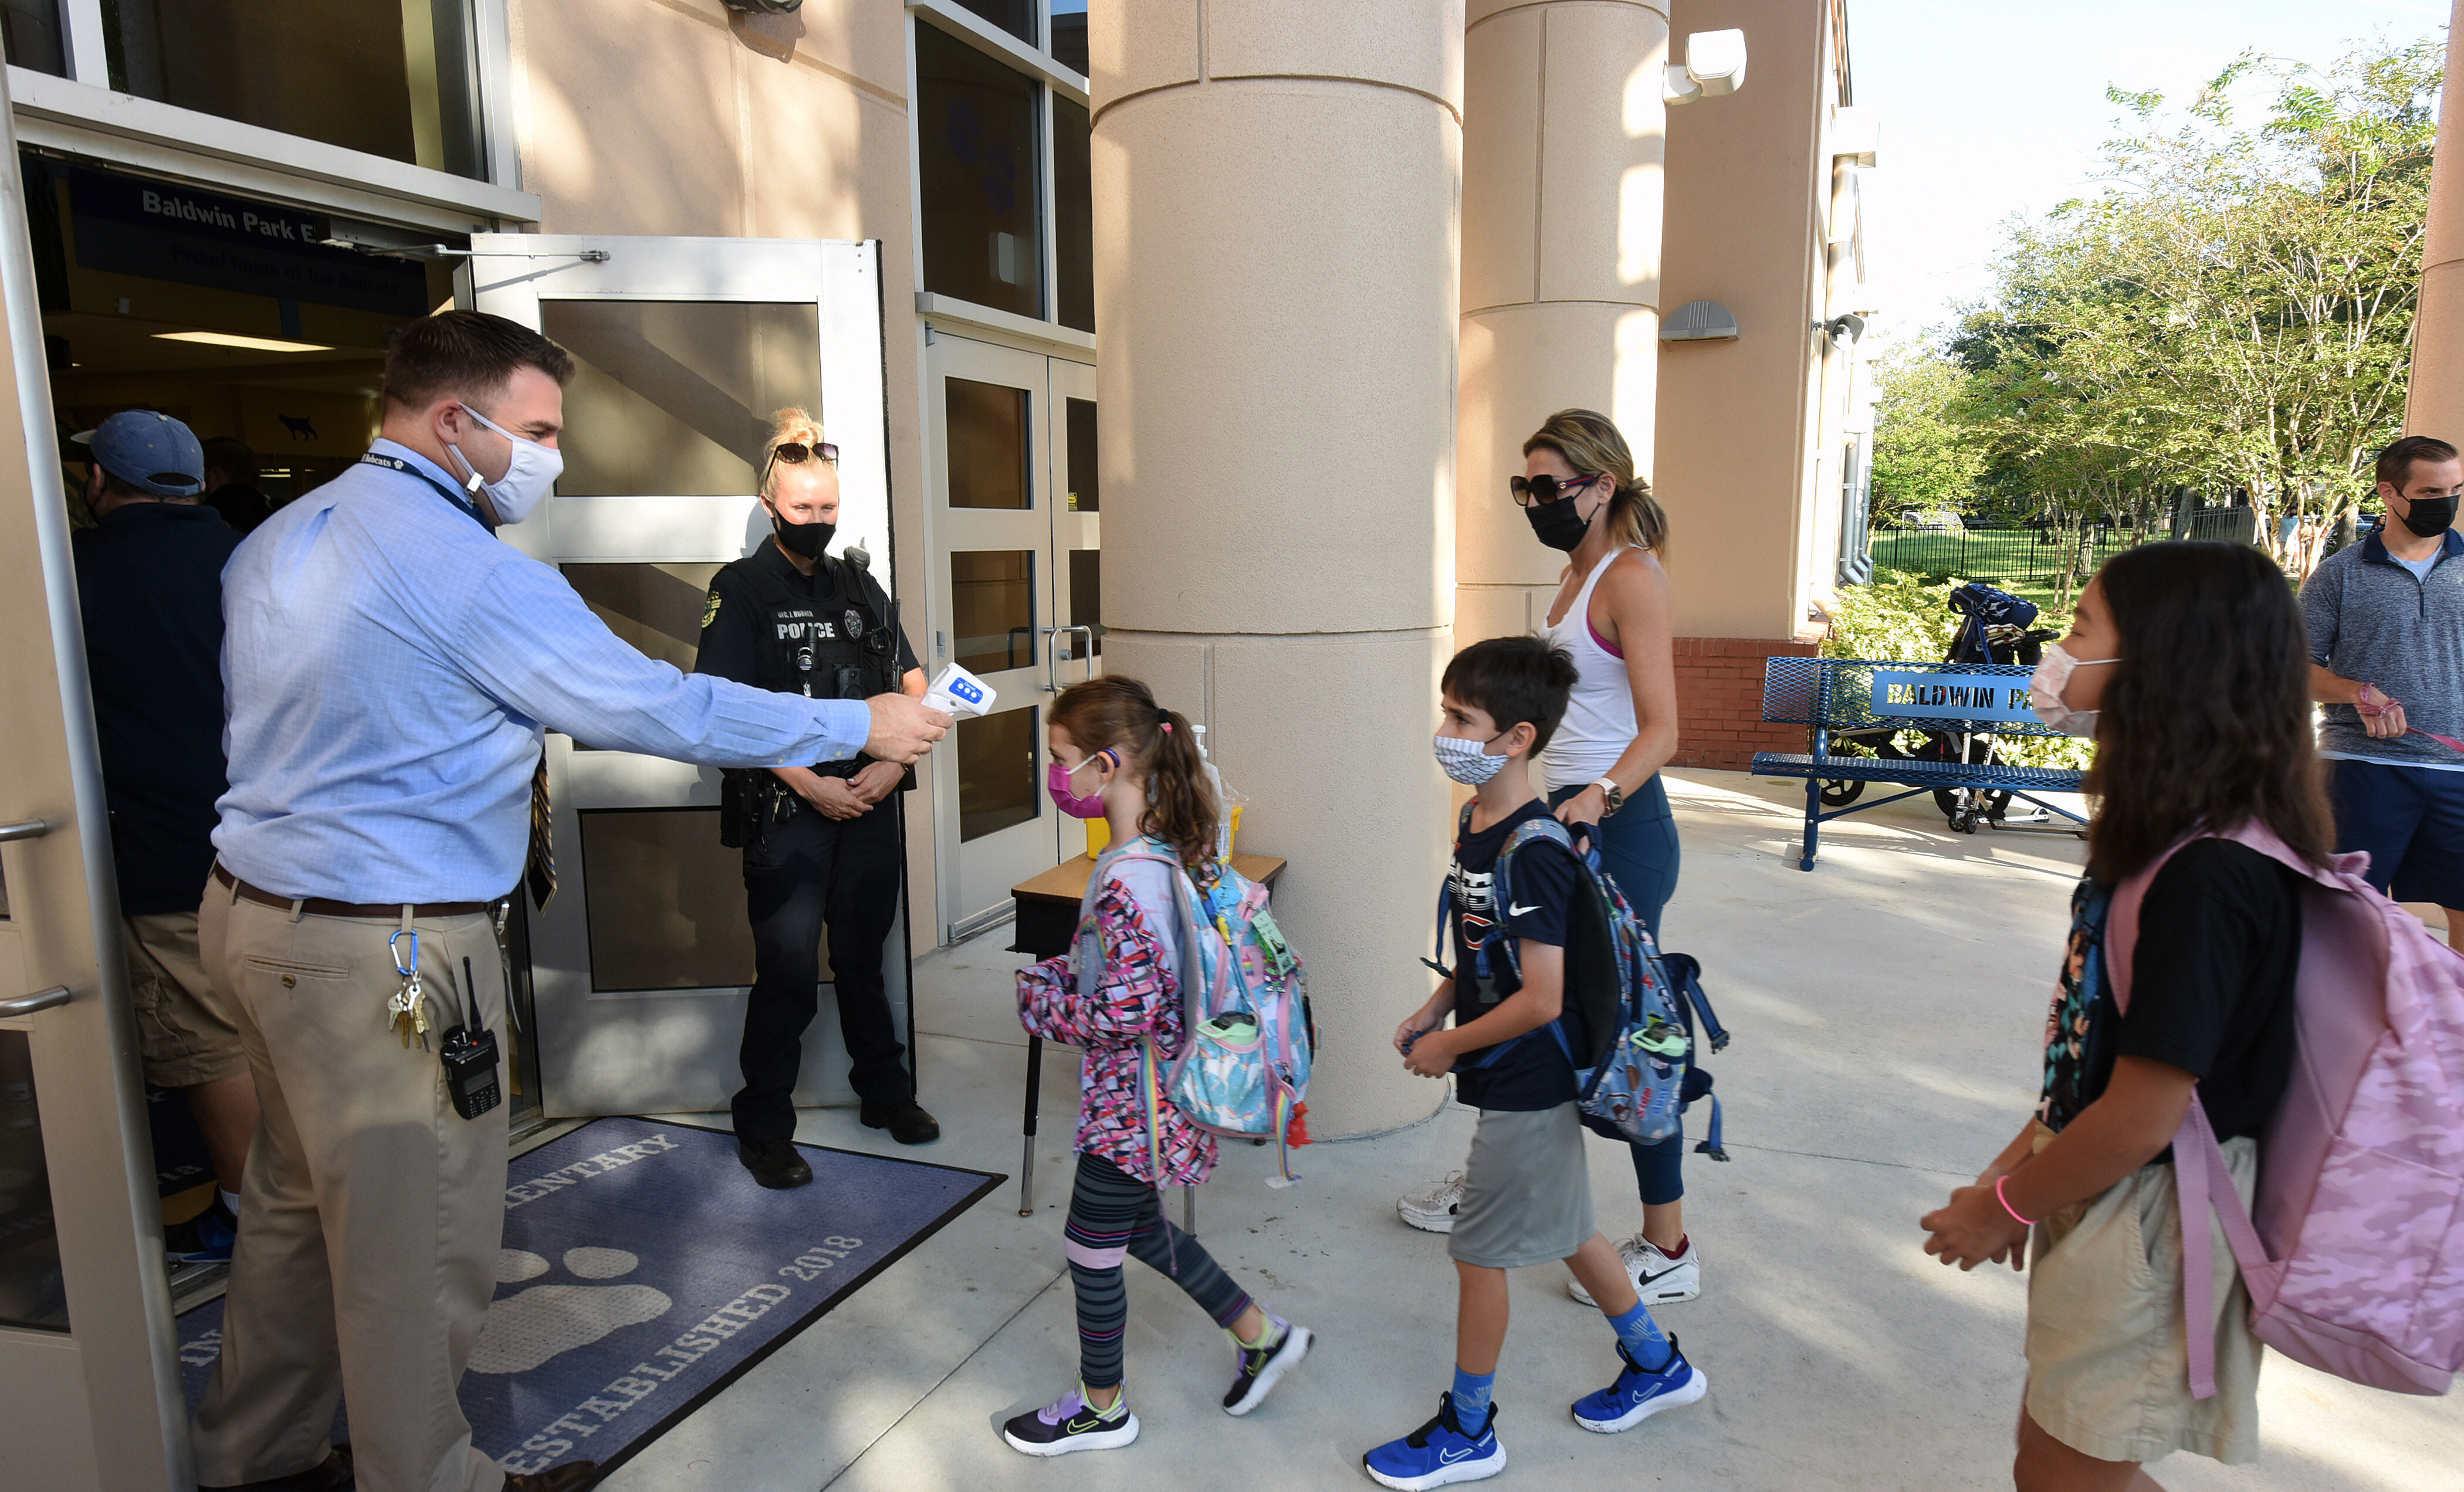 Florida Board of Education votes to sanction 8 school districts with mask mandates with no opt-out